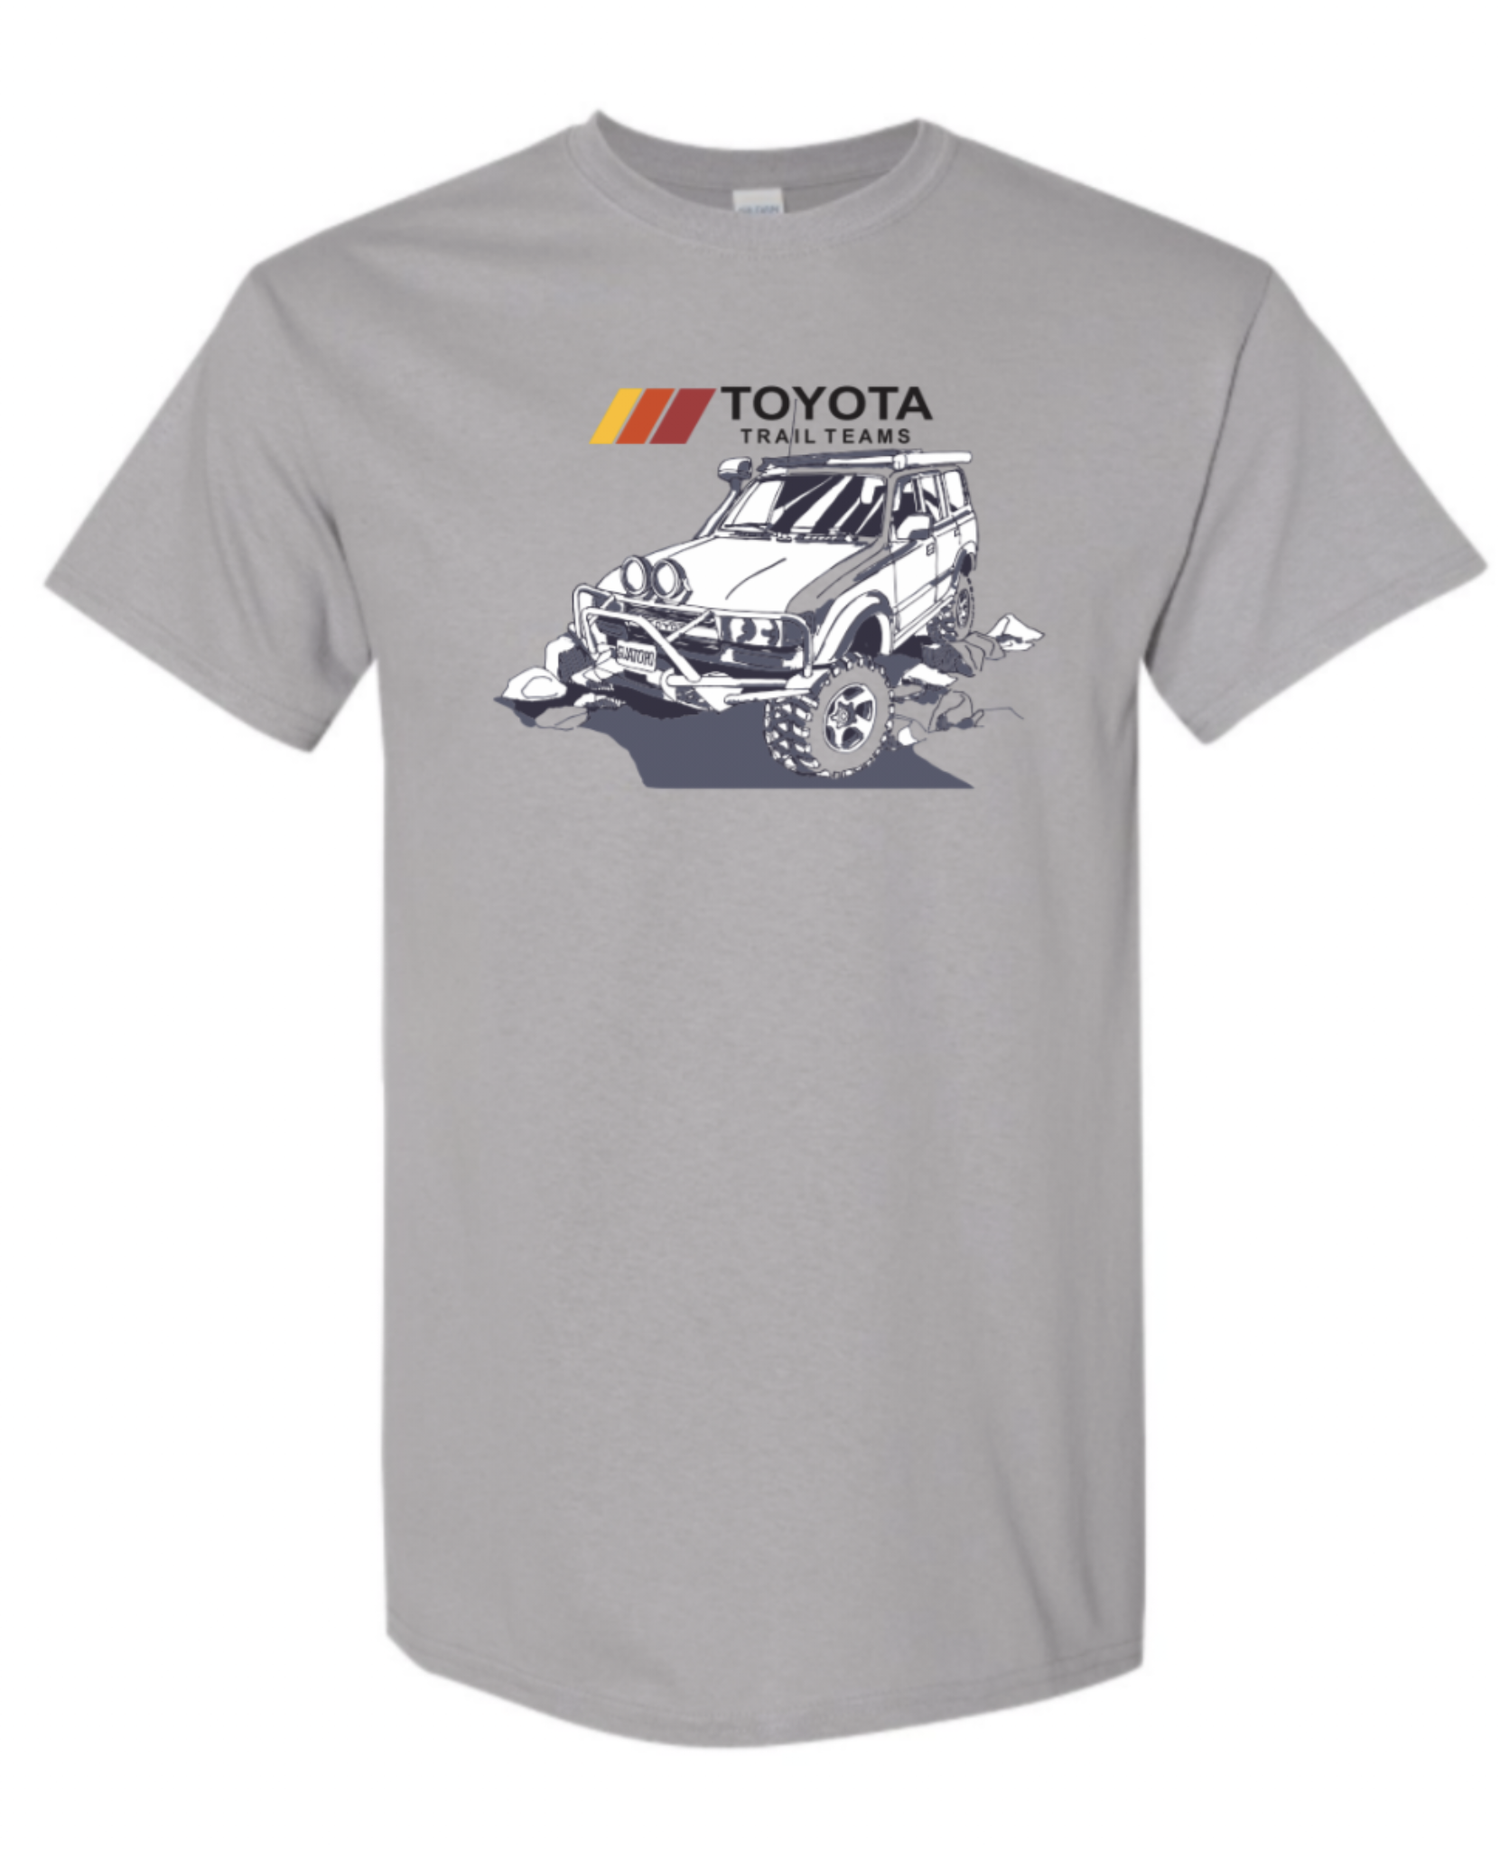 Image of FJ80 Trail Teams Shirt